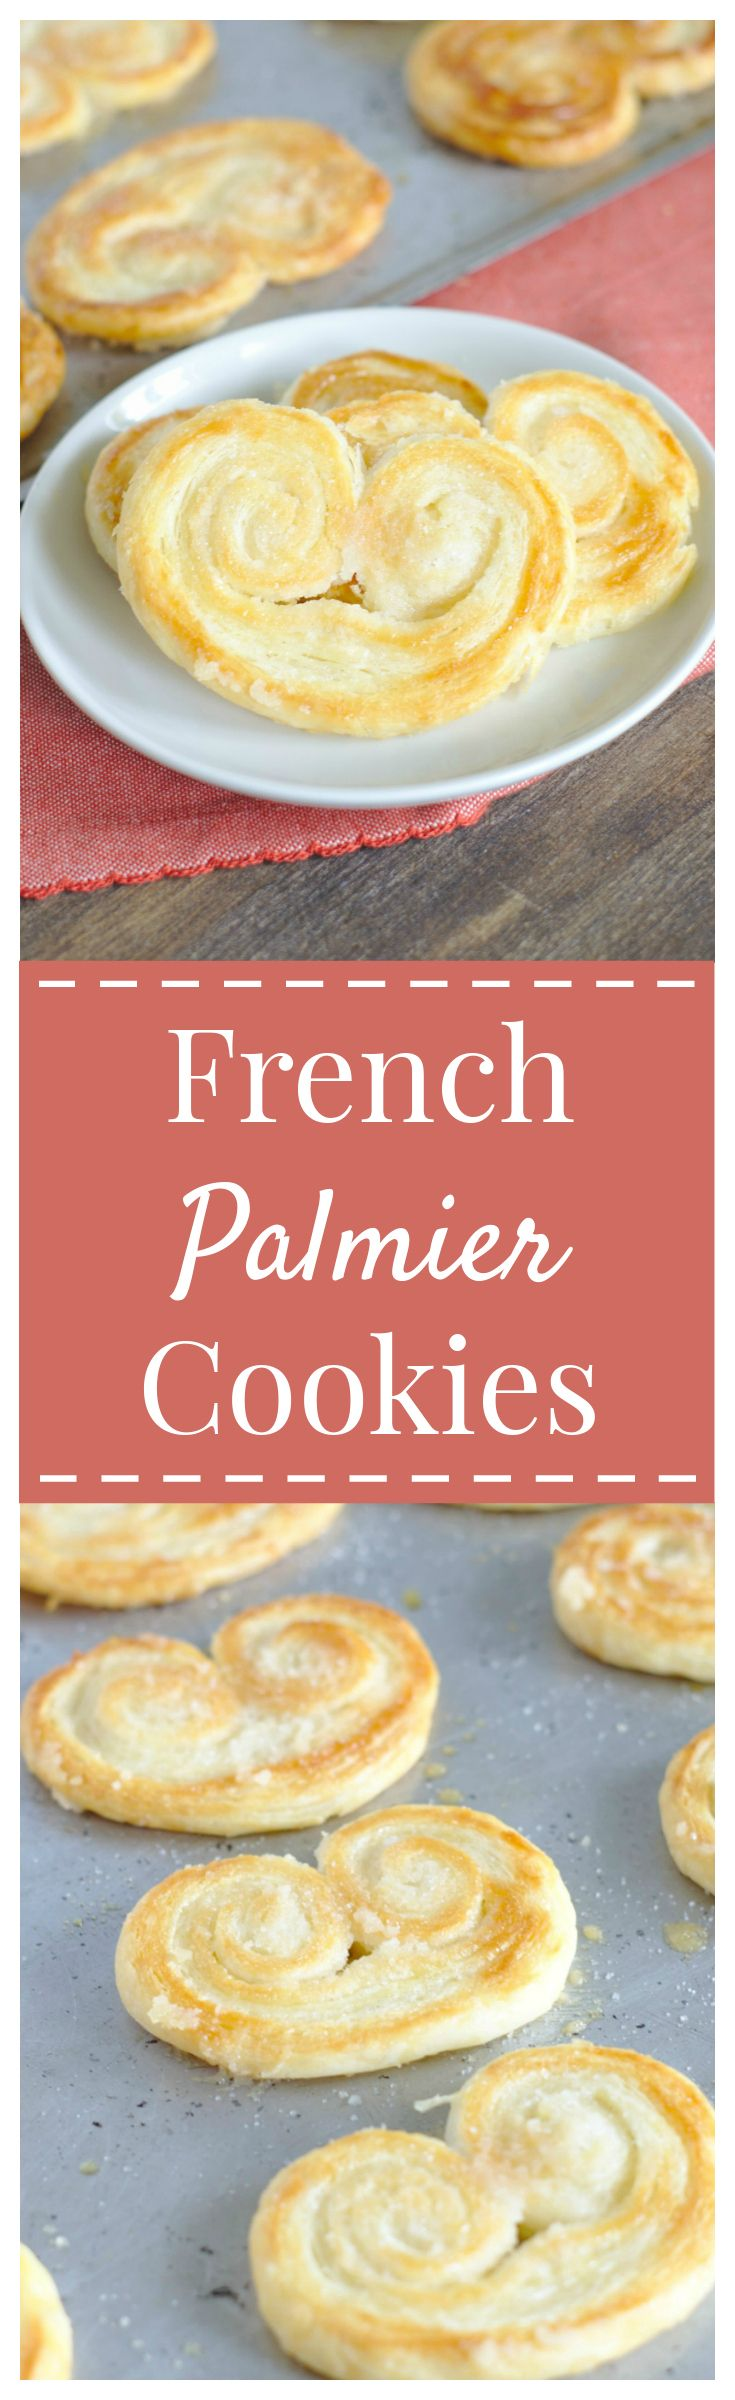 French Palmier Cookies – A delicate French dessert made from just 3 ingredients! These puff pastry cookies are elegant and so easy to make! #french #cookie #palmier #dessert